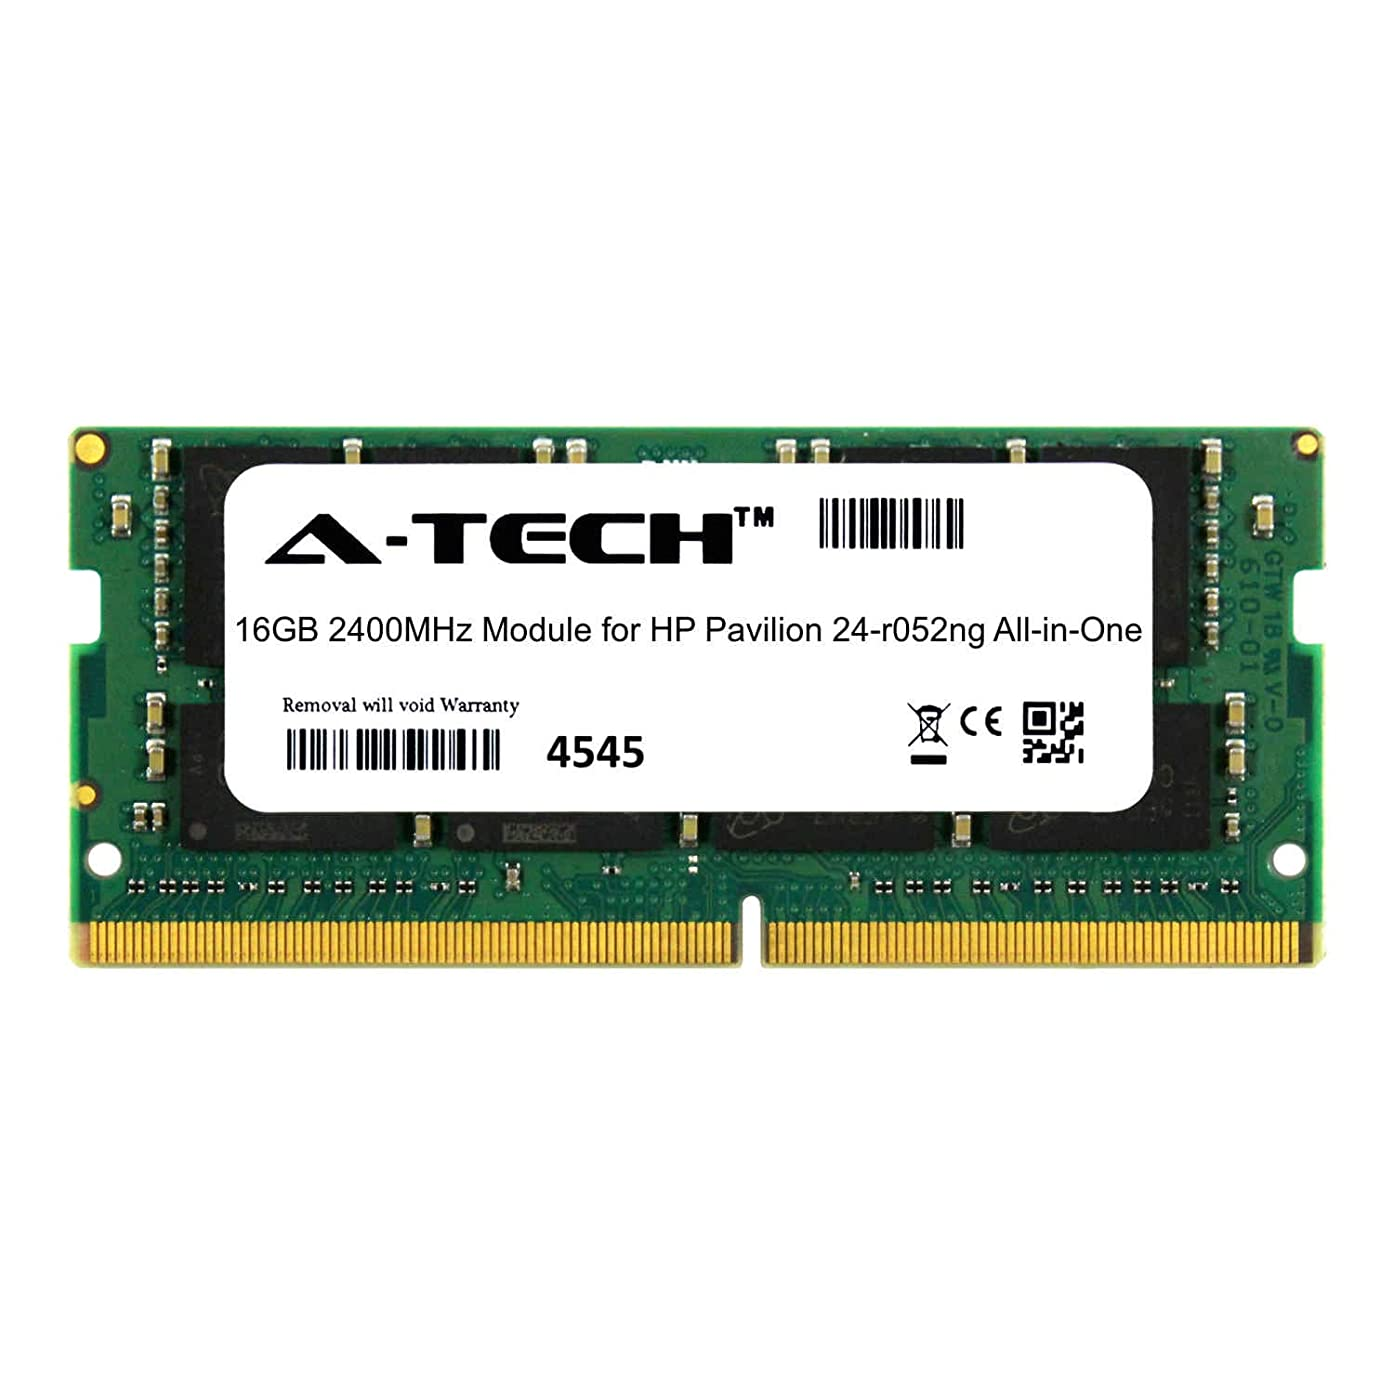 A-Tech 16GB Module for HP Pavilion 24-r052ng All-in-One (AIO) Compatible DDR4 2400Mhz Memory Ram (ATMS307322A25831X1)